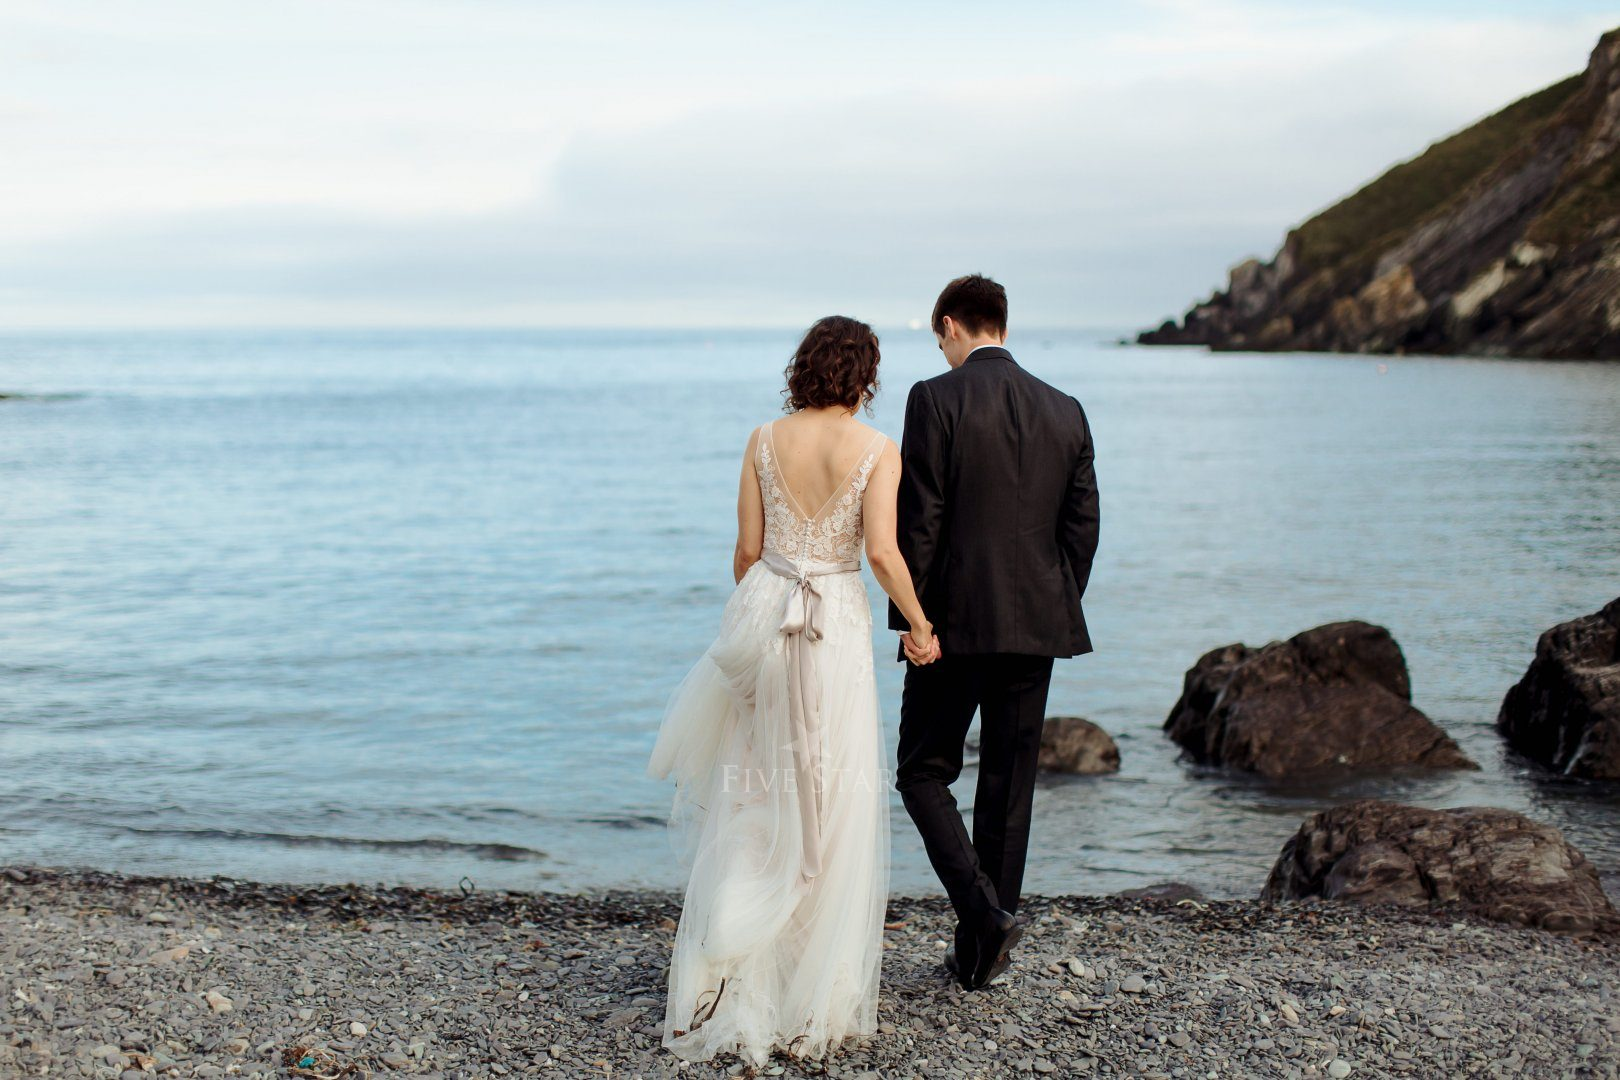 Wedding photos at Sands Cove, bottom of the laneway